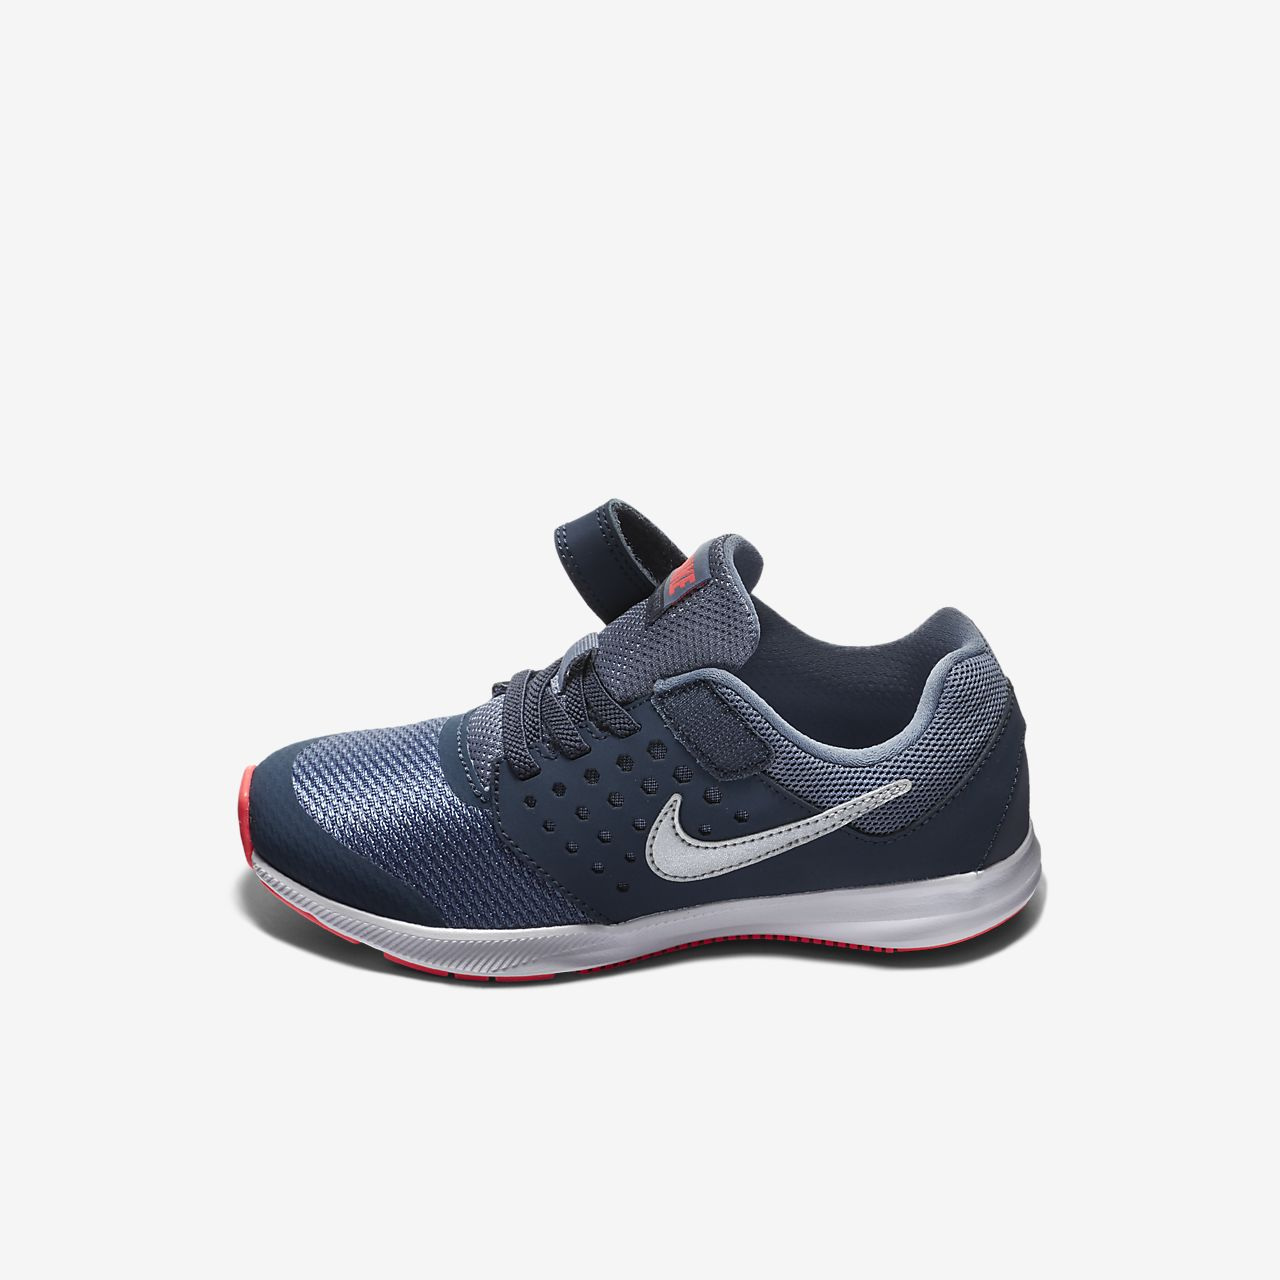 ... Nike Downshifter 7 Younger Kids' Running Shoe